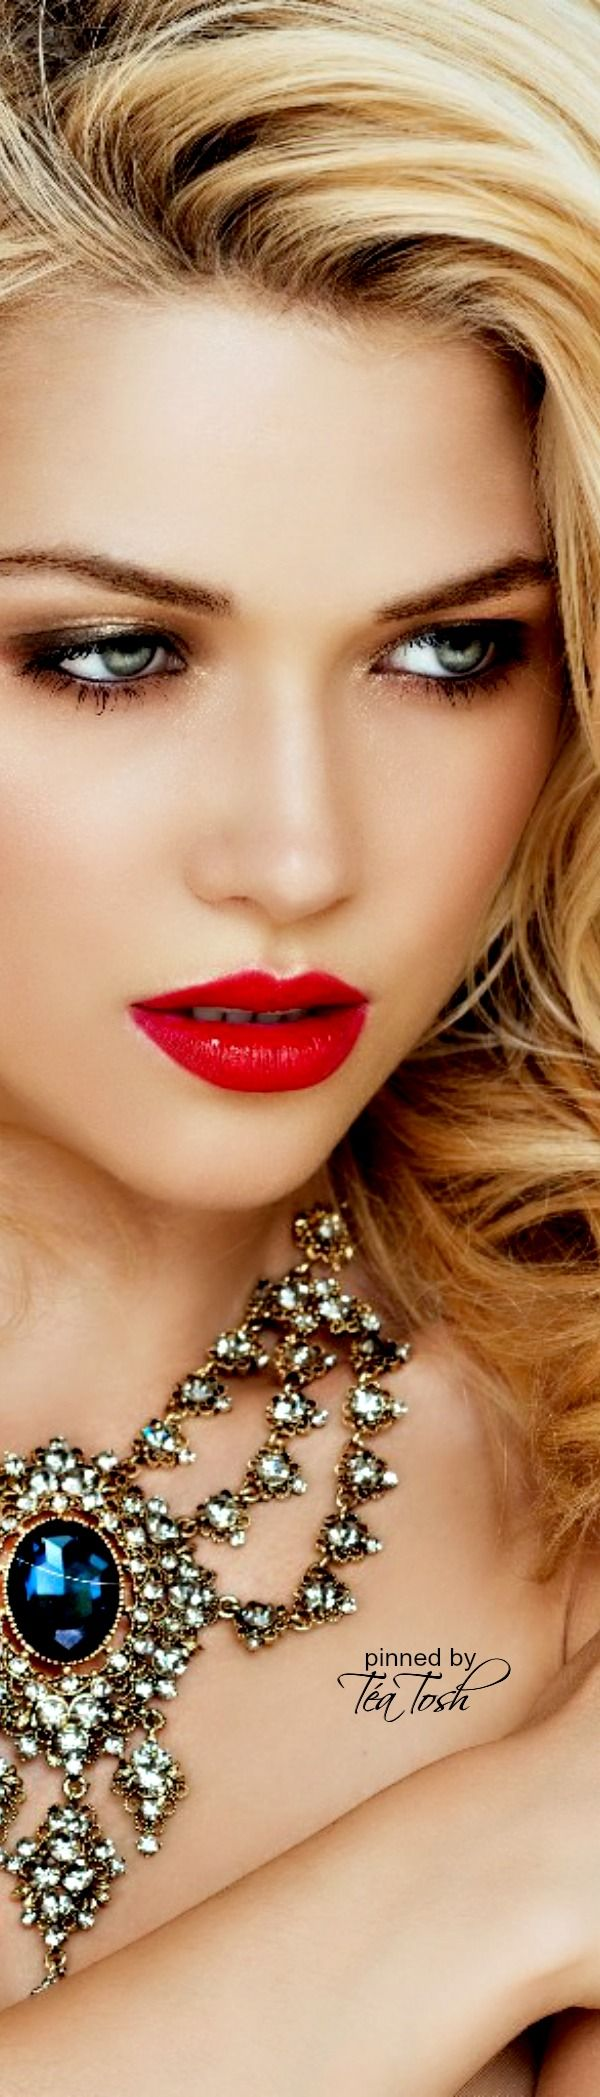 best 25+ perfect red lips ideas on pinterest | red lipsticks, red